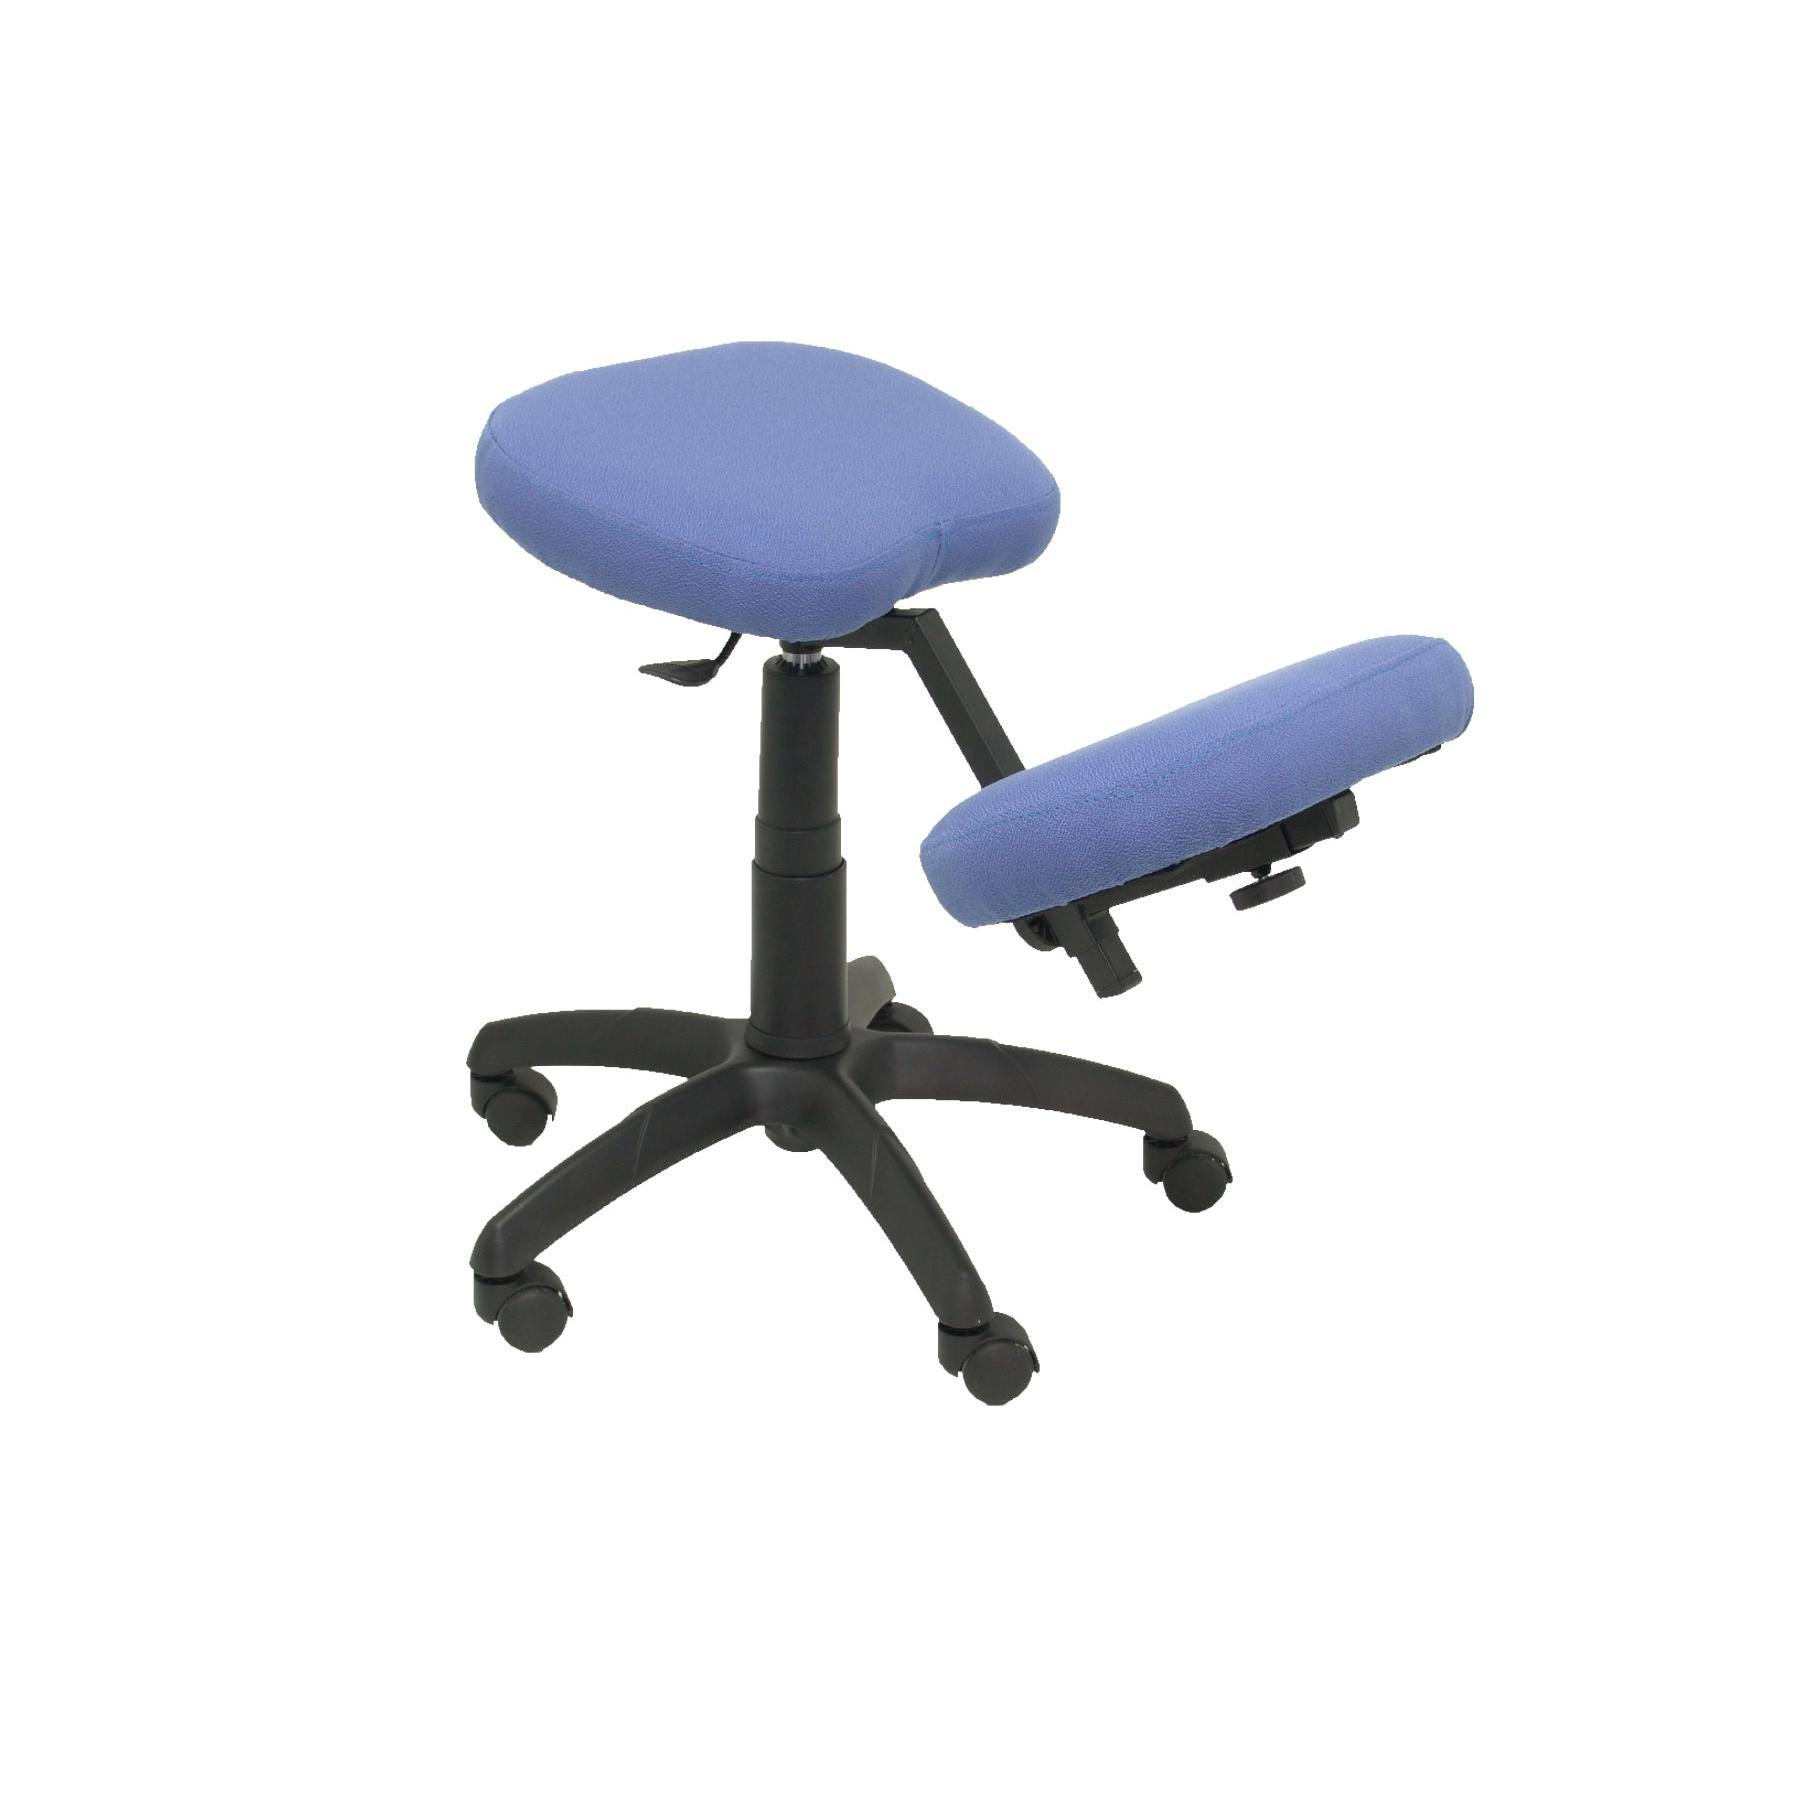 Office's Stool Ergonomic Swivel And Dimmable In High Altitude Up Seat Upholstered In BALI Tissue Full Color Blue Light (RODIL